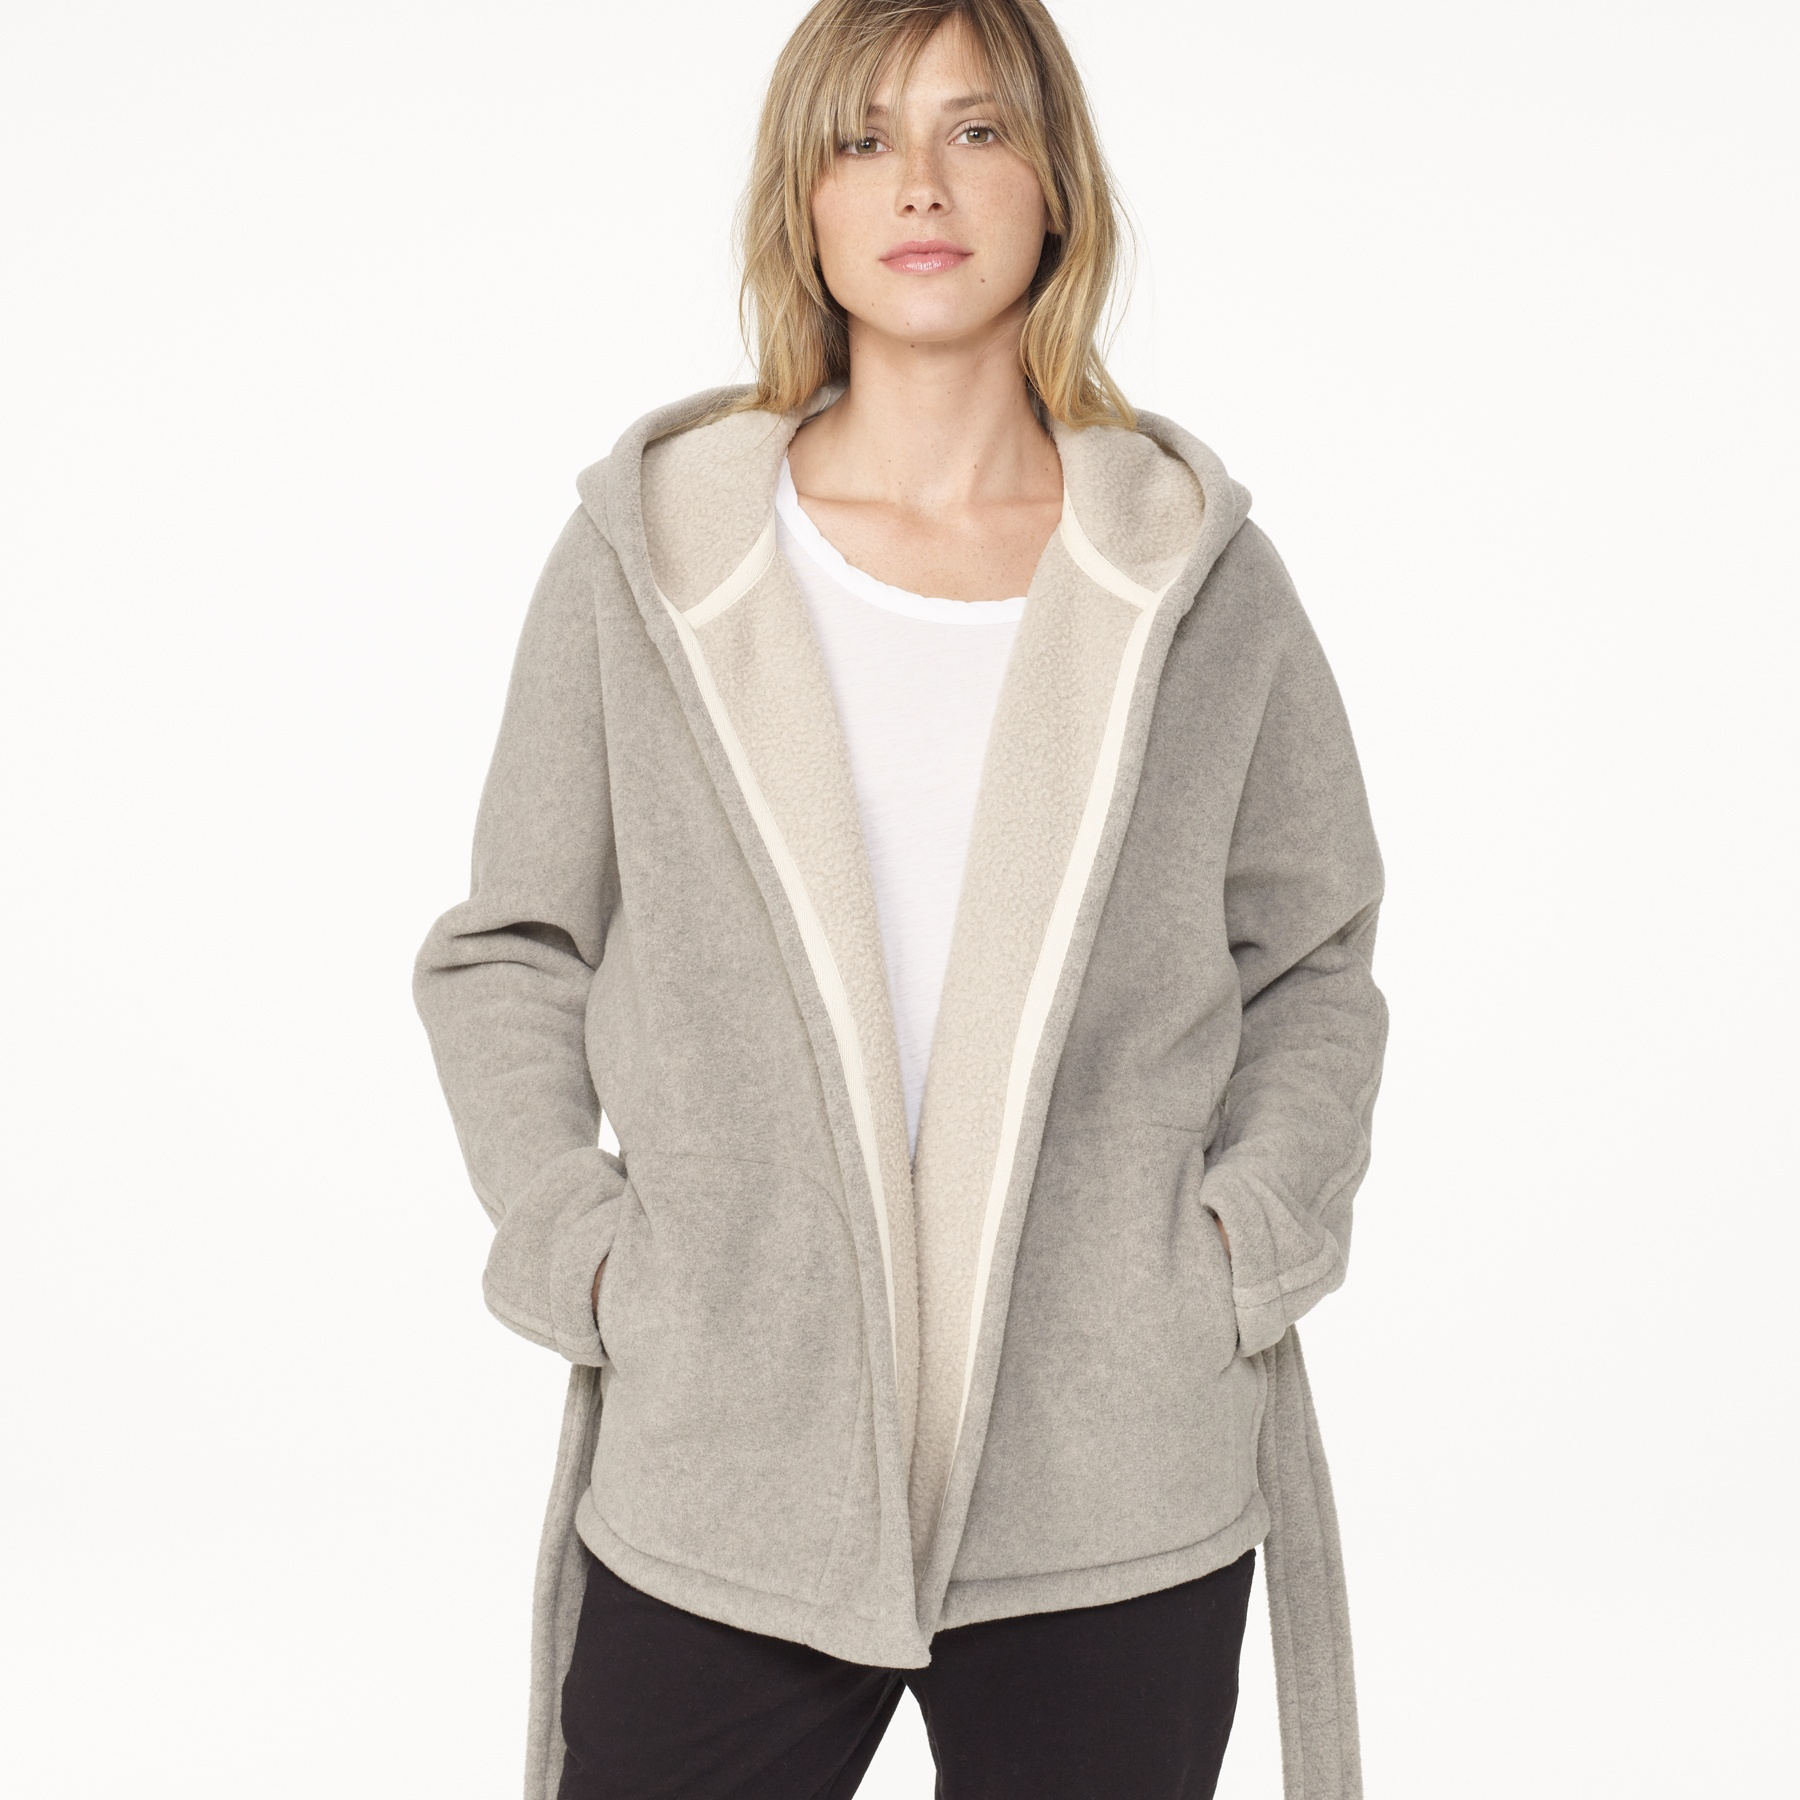 James perse Yosemite Oversized Polar Fleece Jacket in Natural | Lyst